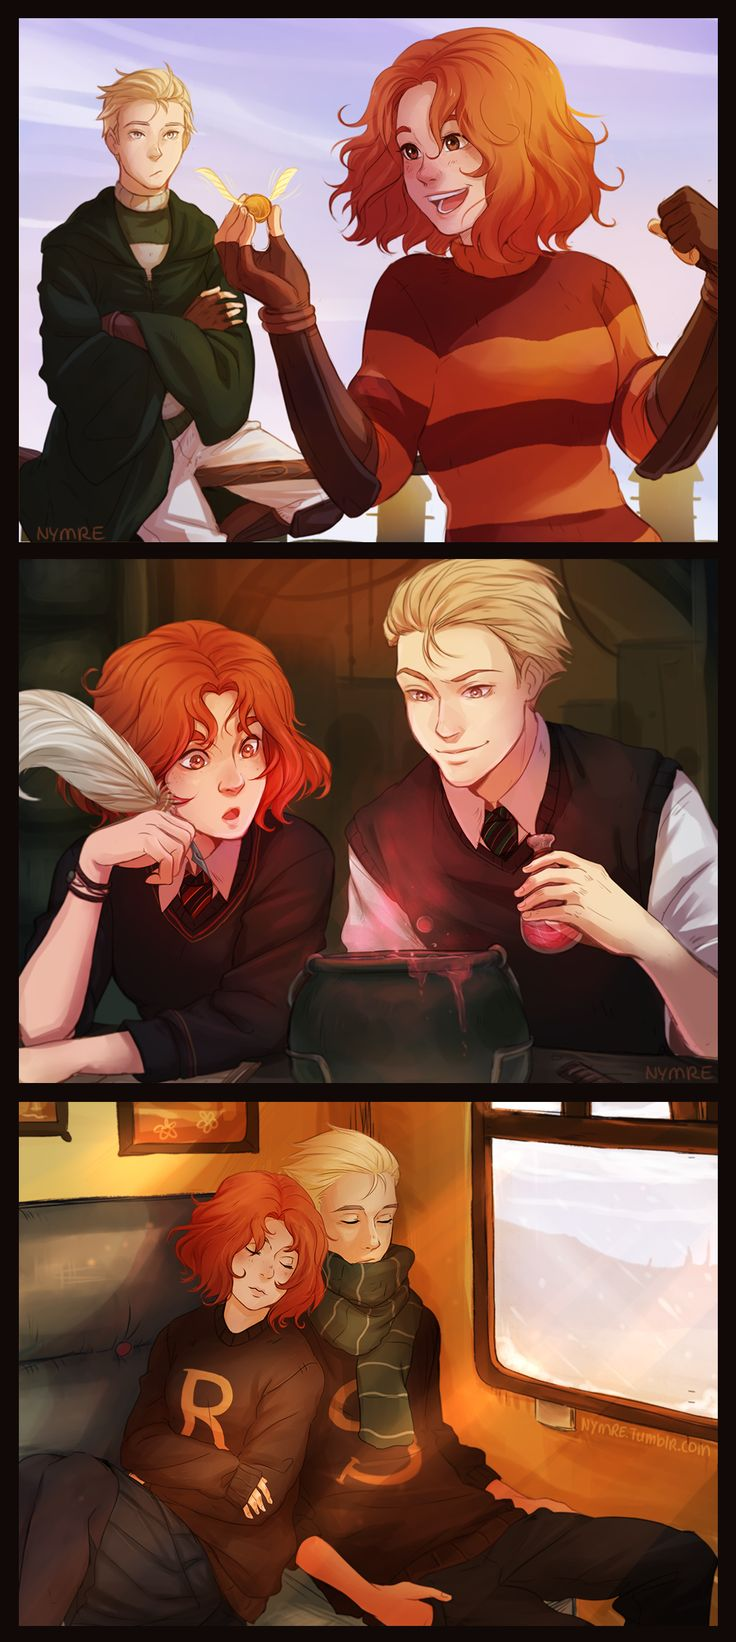 Scorose by nymre on DeviantArt (Malfoy and Ron's kids. Not together. They apparently like eachother.)